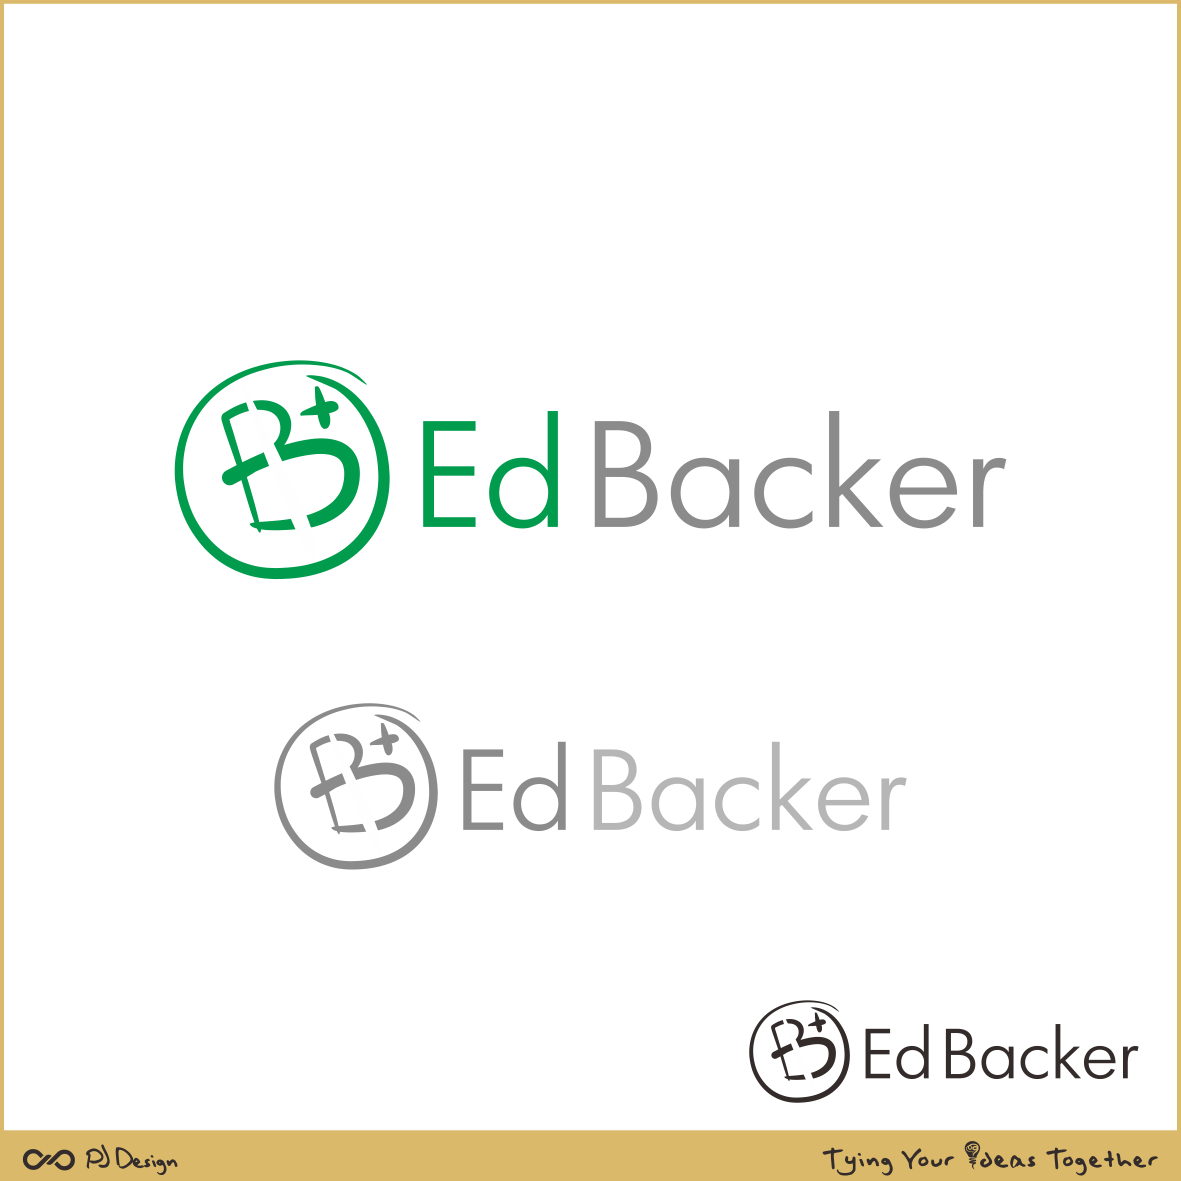 Logo Design by PJD - Entry No. 195 in the Logo Design Contest New Logo Design for edbacker.